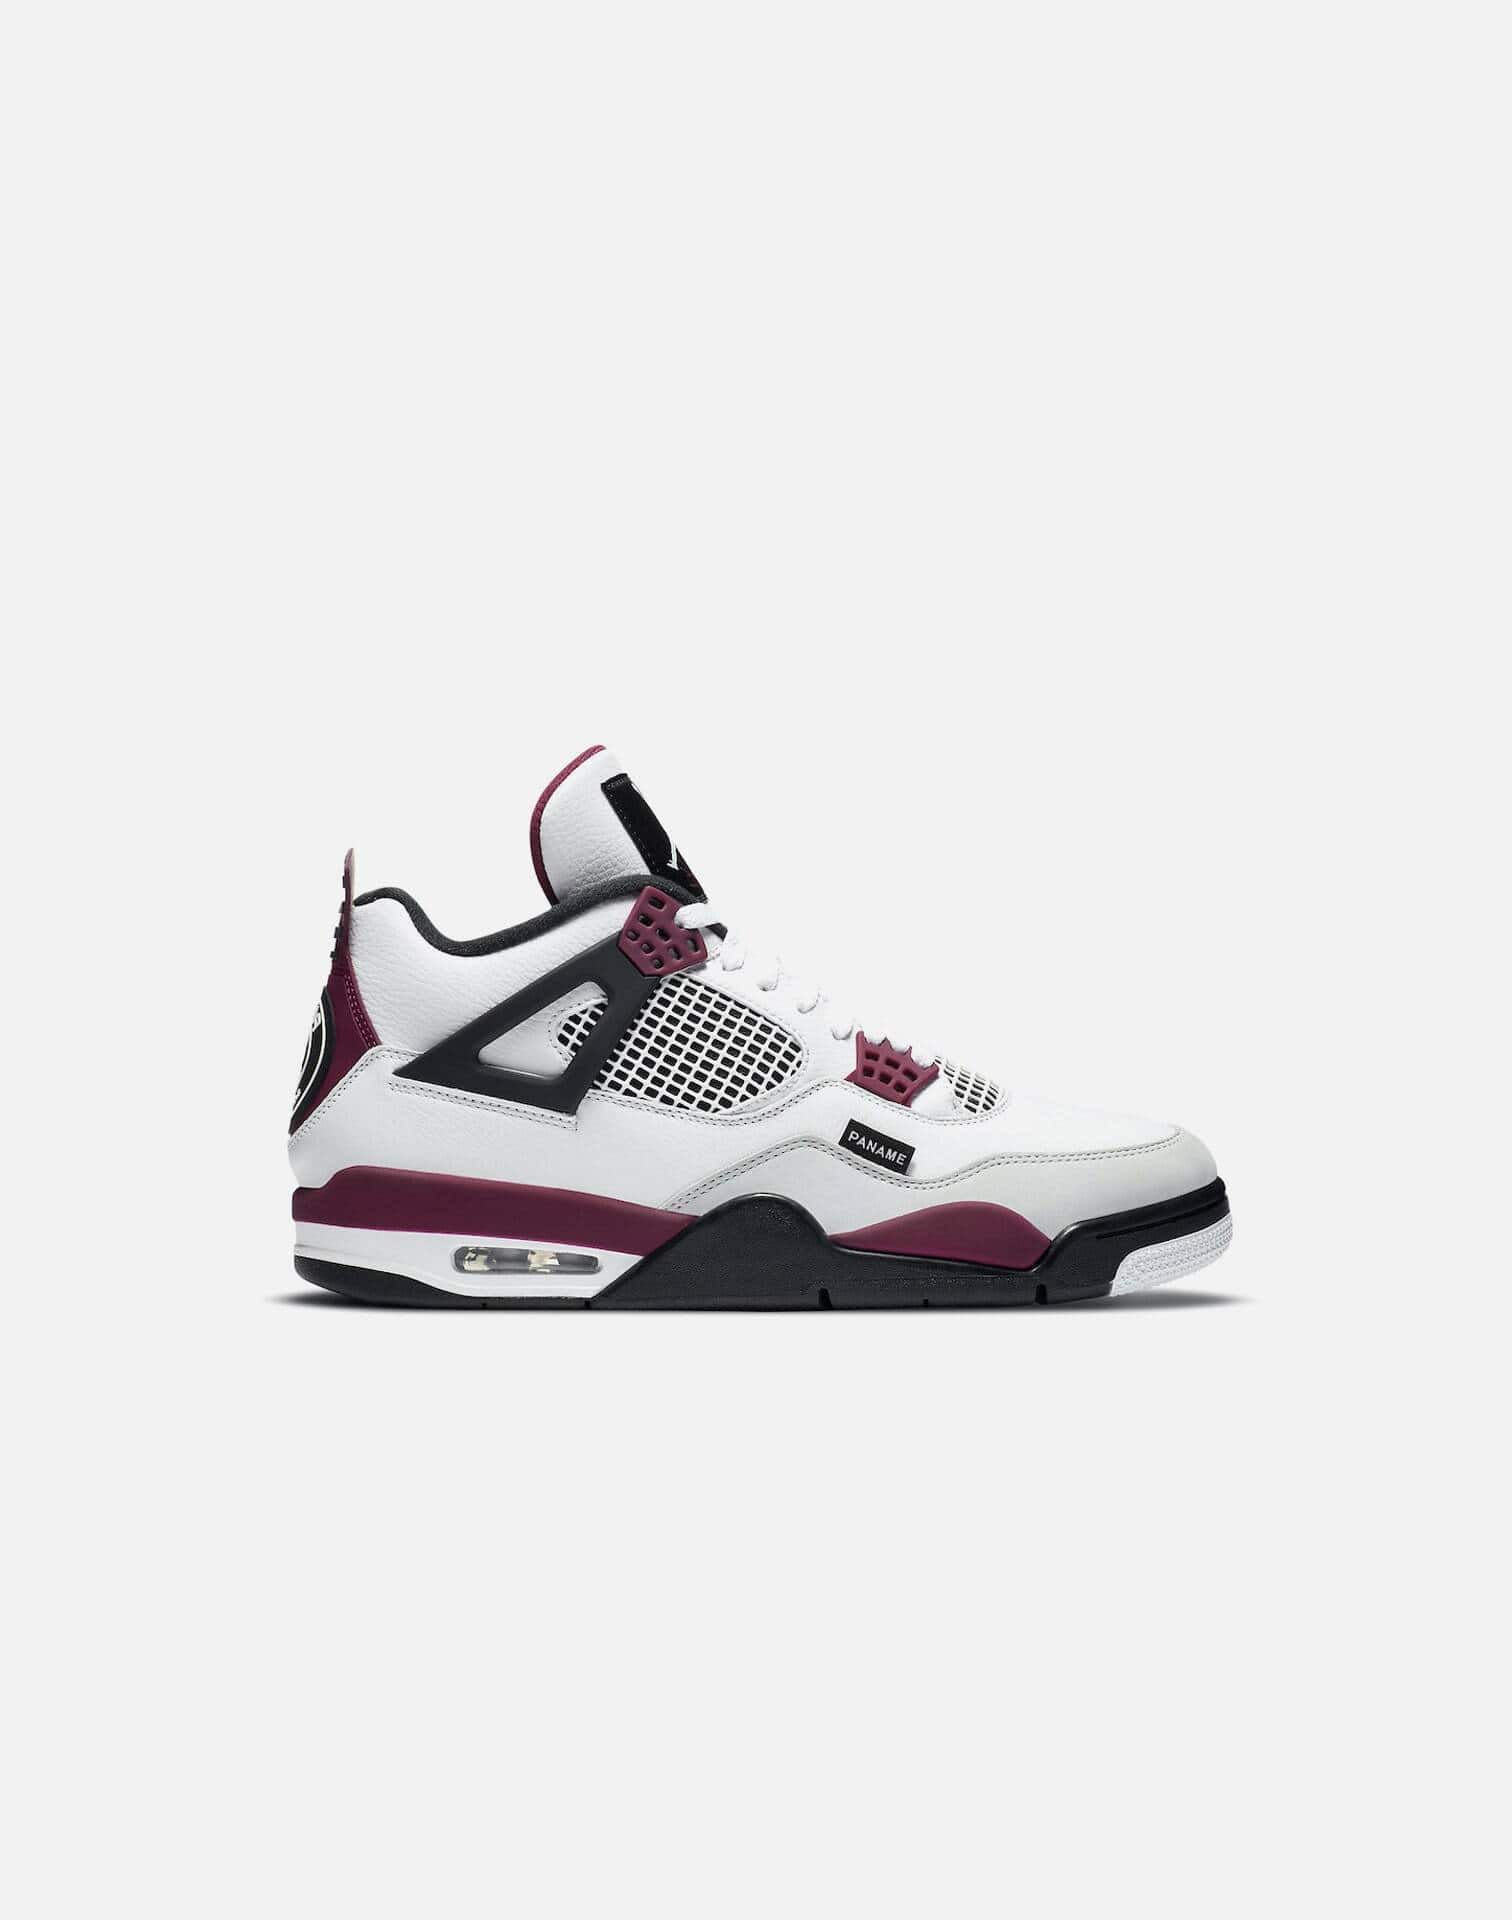 Jordan AIR JORDAN RETRO 4 'PSG' GRADE-SCHOOL